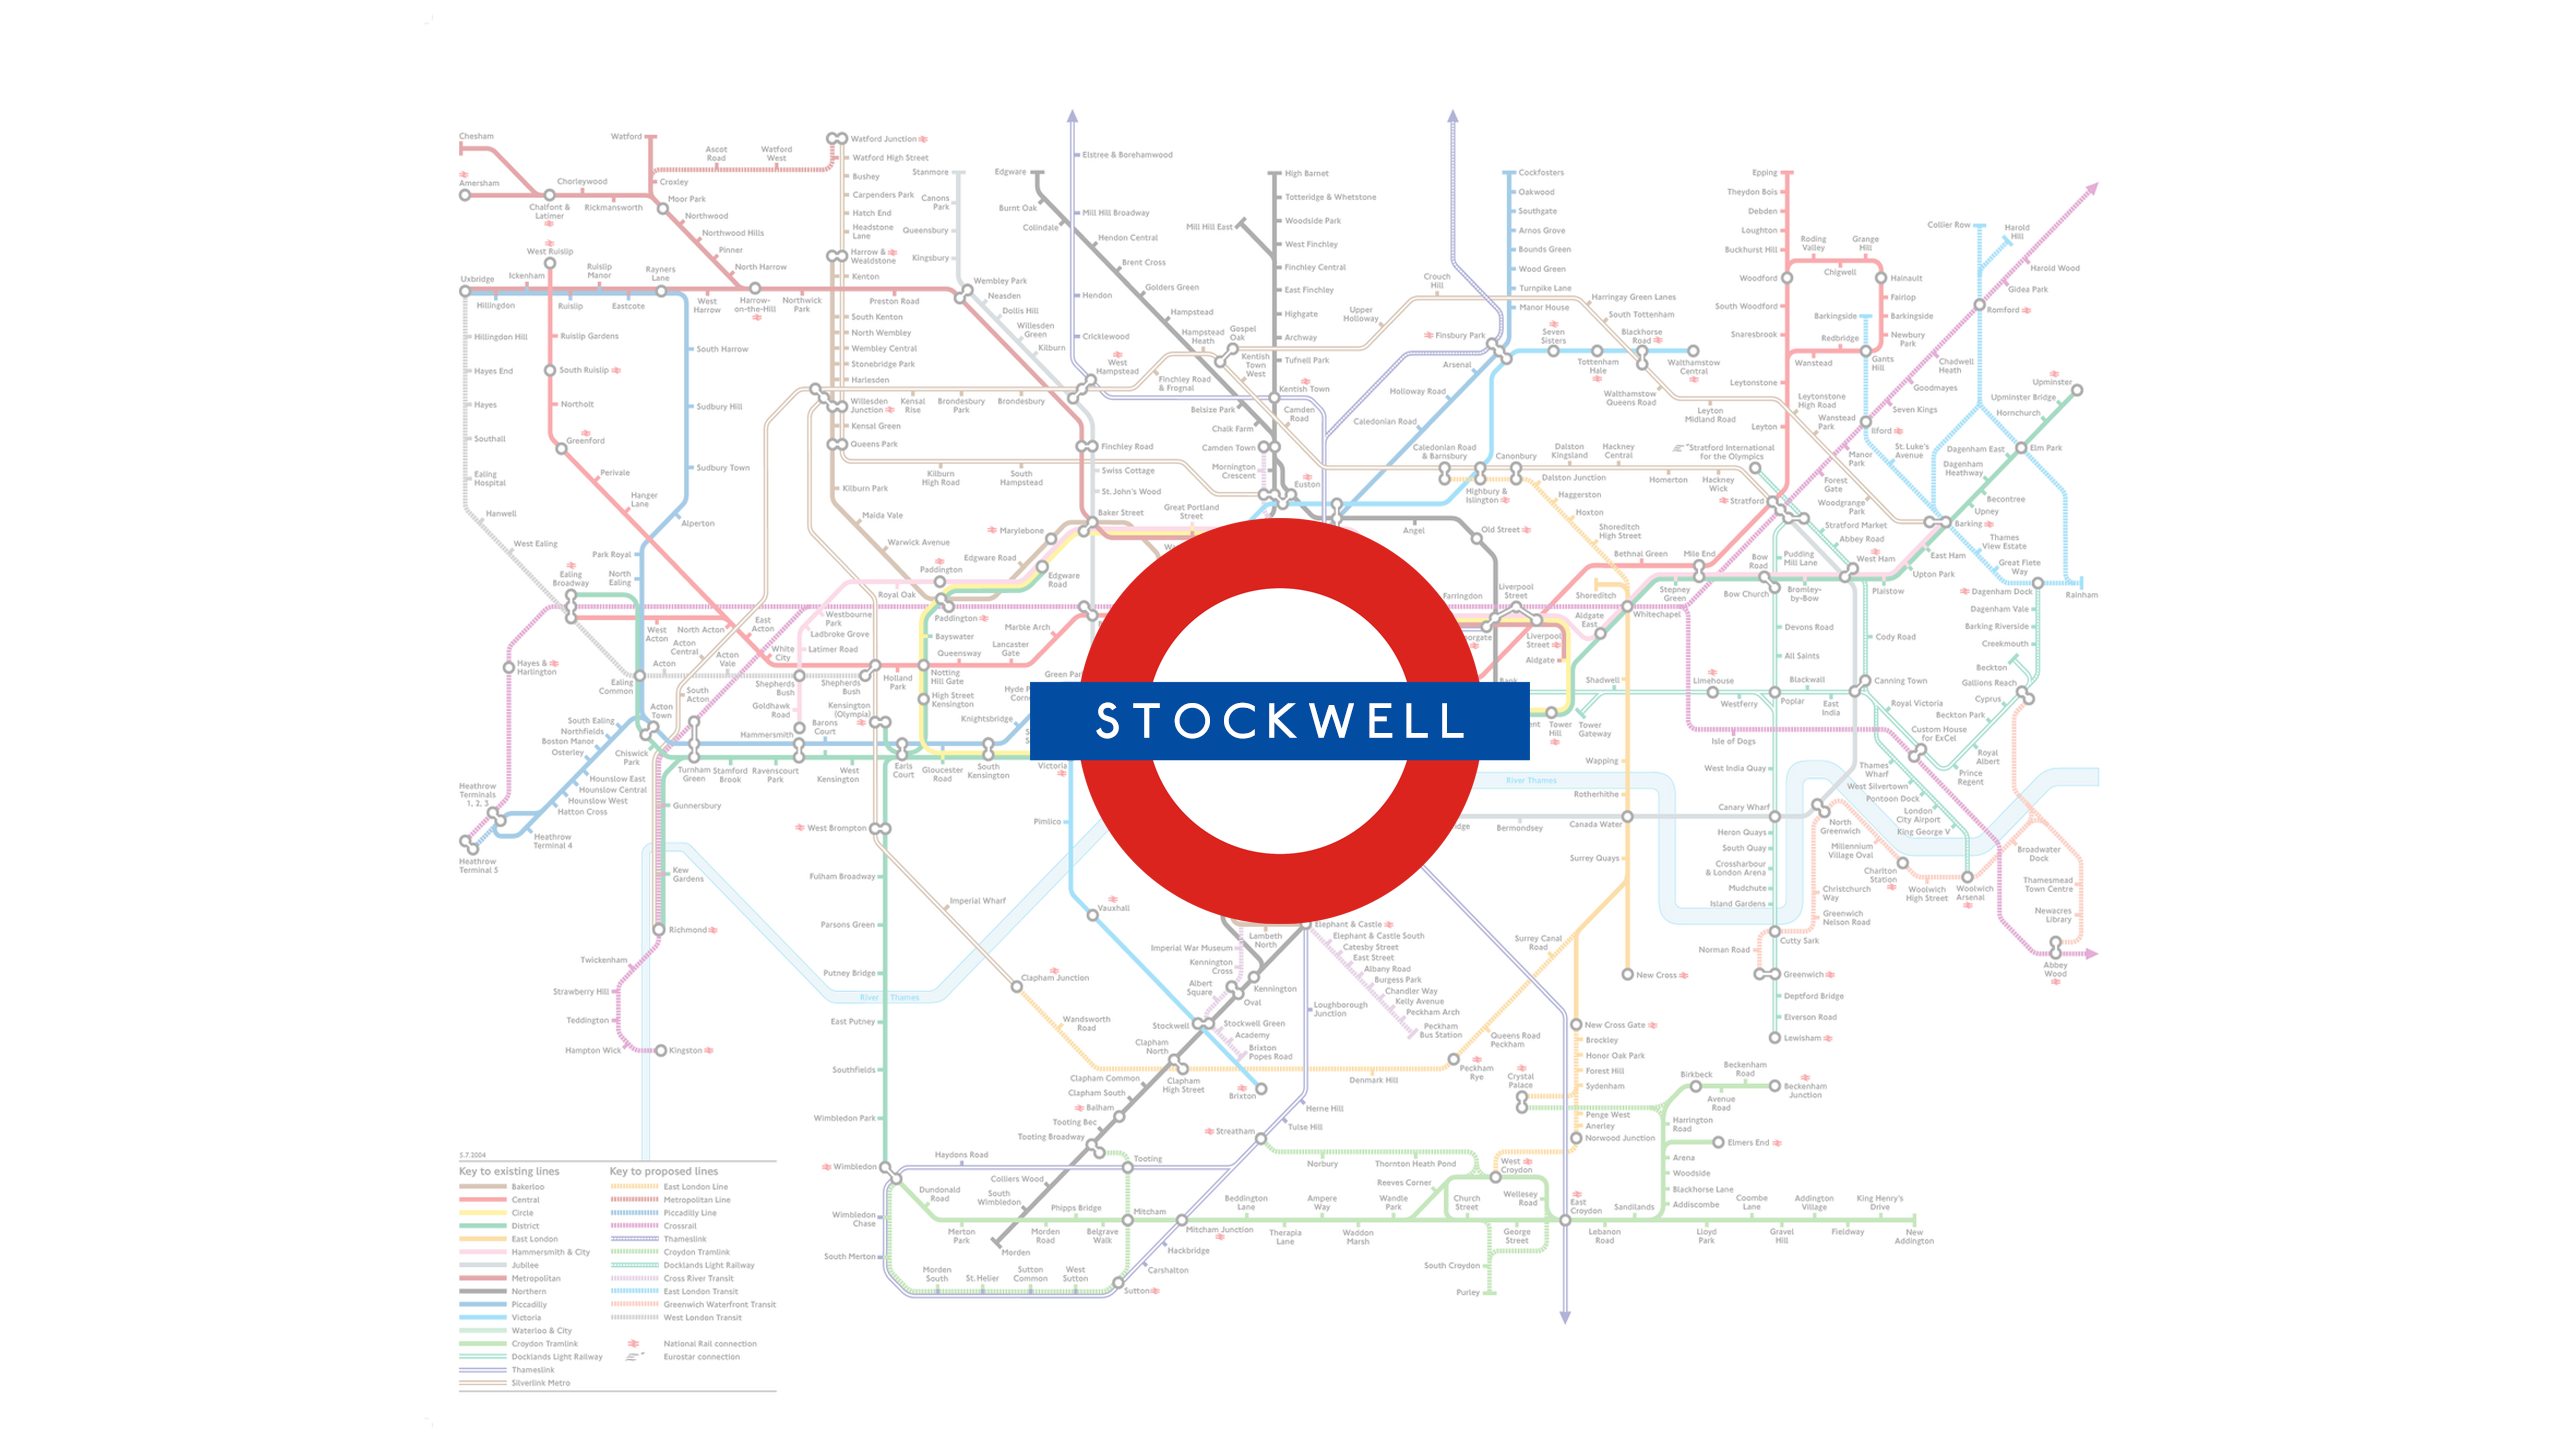 Stockwell (Map)